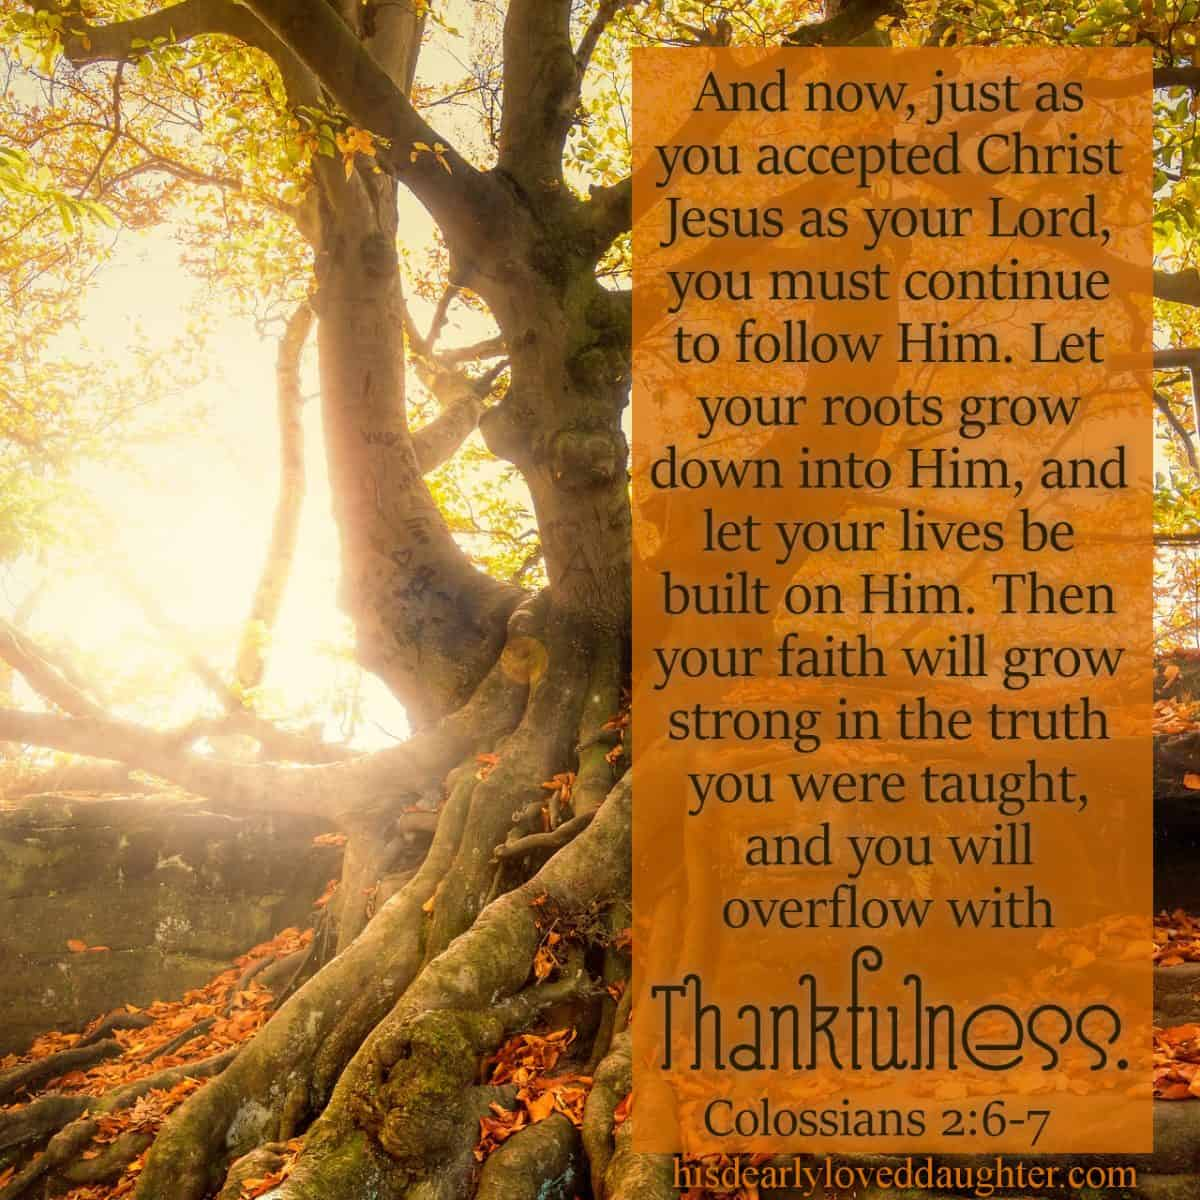 And now, just as you accepted Christ Jesus as your Lord, you must continue to follow Him. Let your roots grow down into Him, and let your lives be built on Him. Then your faith will grow strong in the truth you were taught, and you will overflow with thankfulness. Colossians 2:6-7